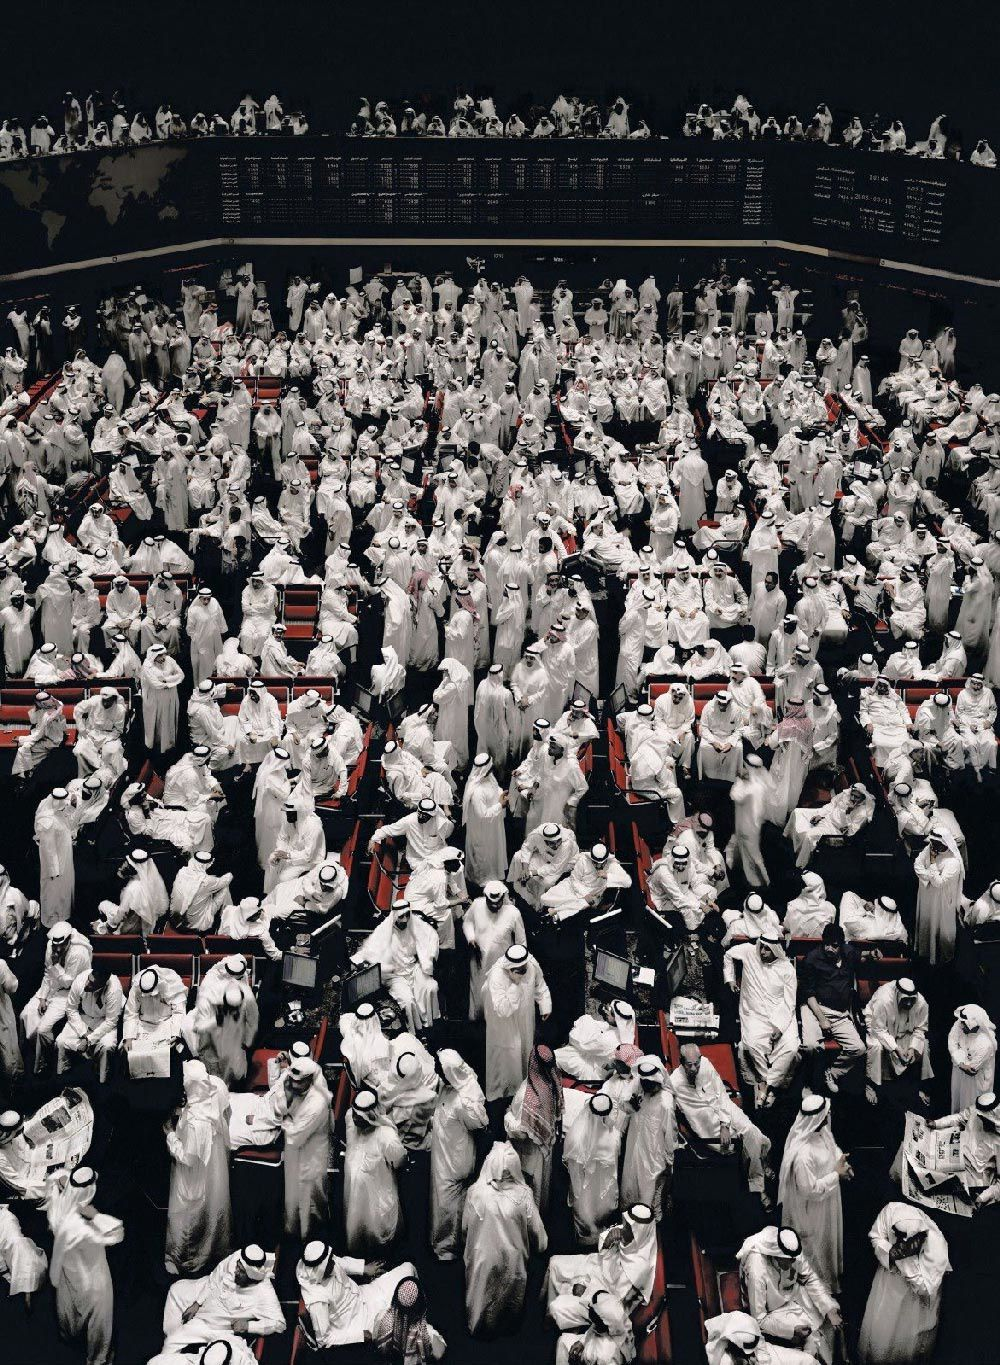 Kuwait stock exchange (Photo de Andreas Gursky)